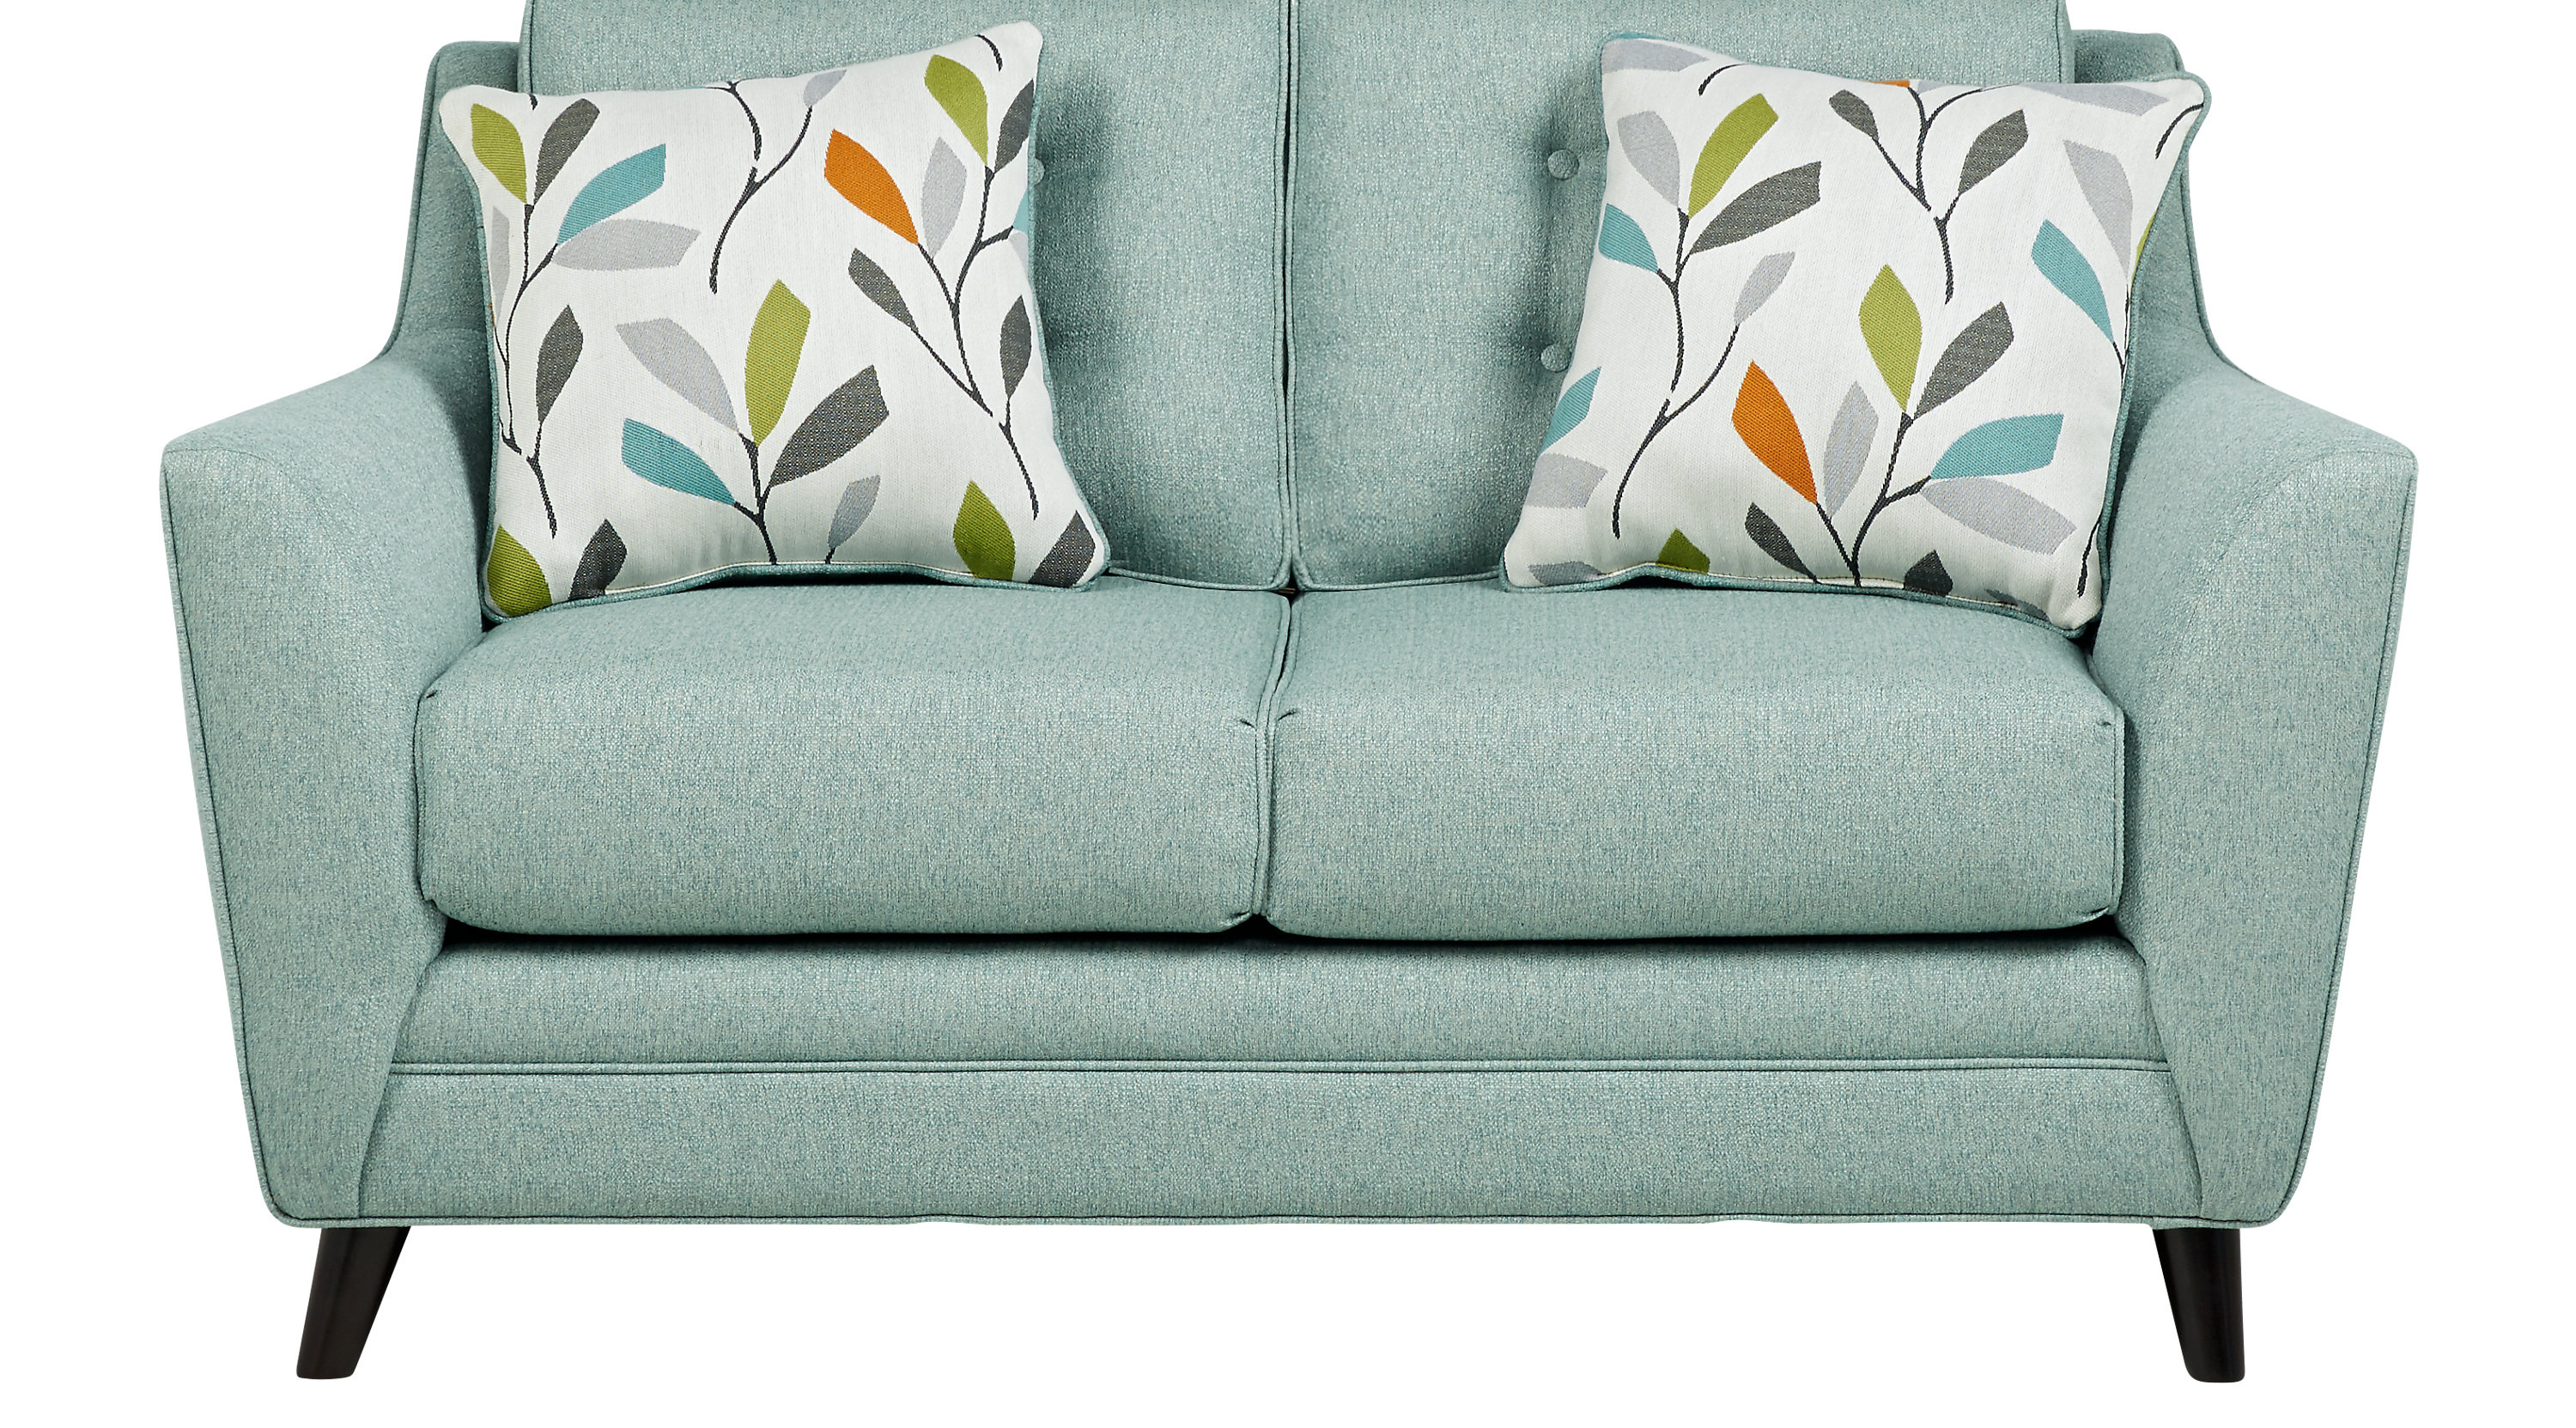 $458.00 - Cobble Heights Teal Loveseat - Classic - Contemporary